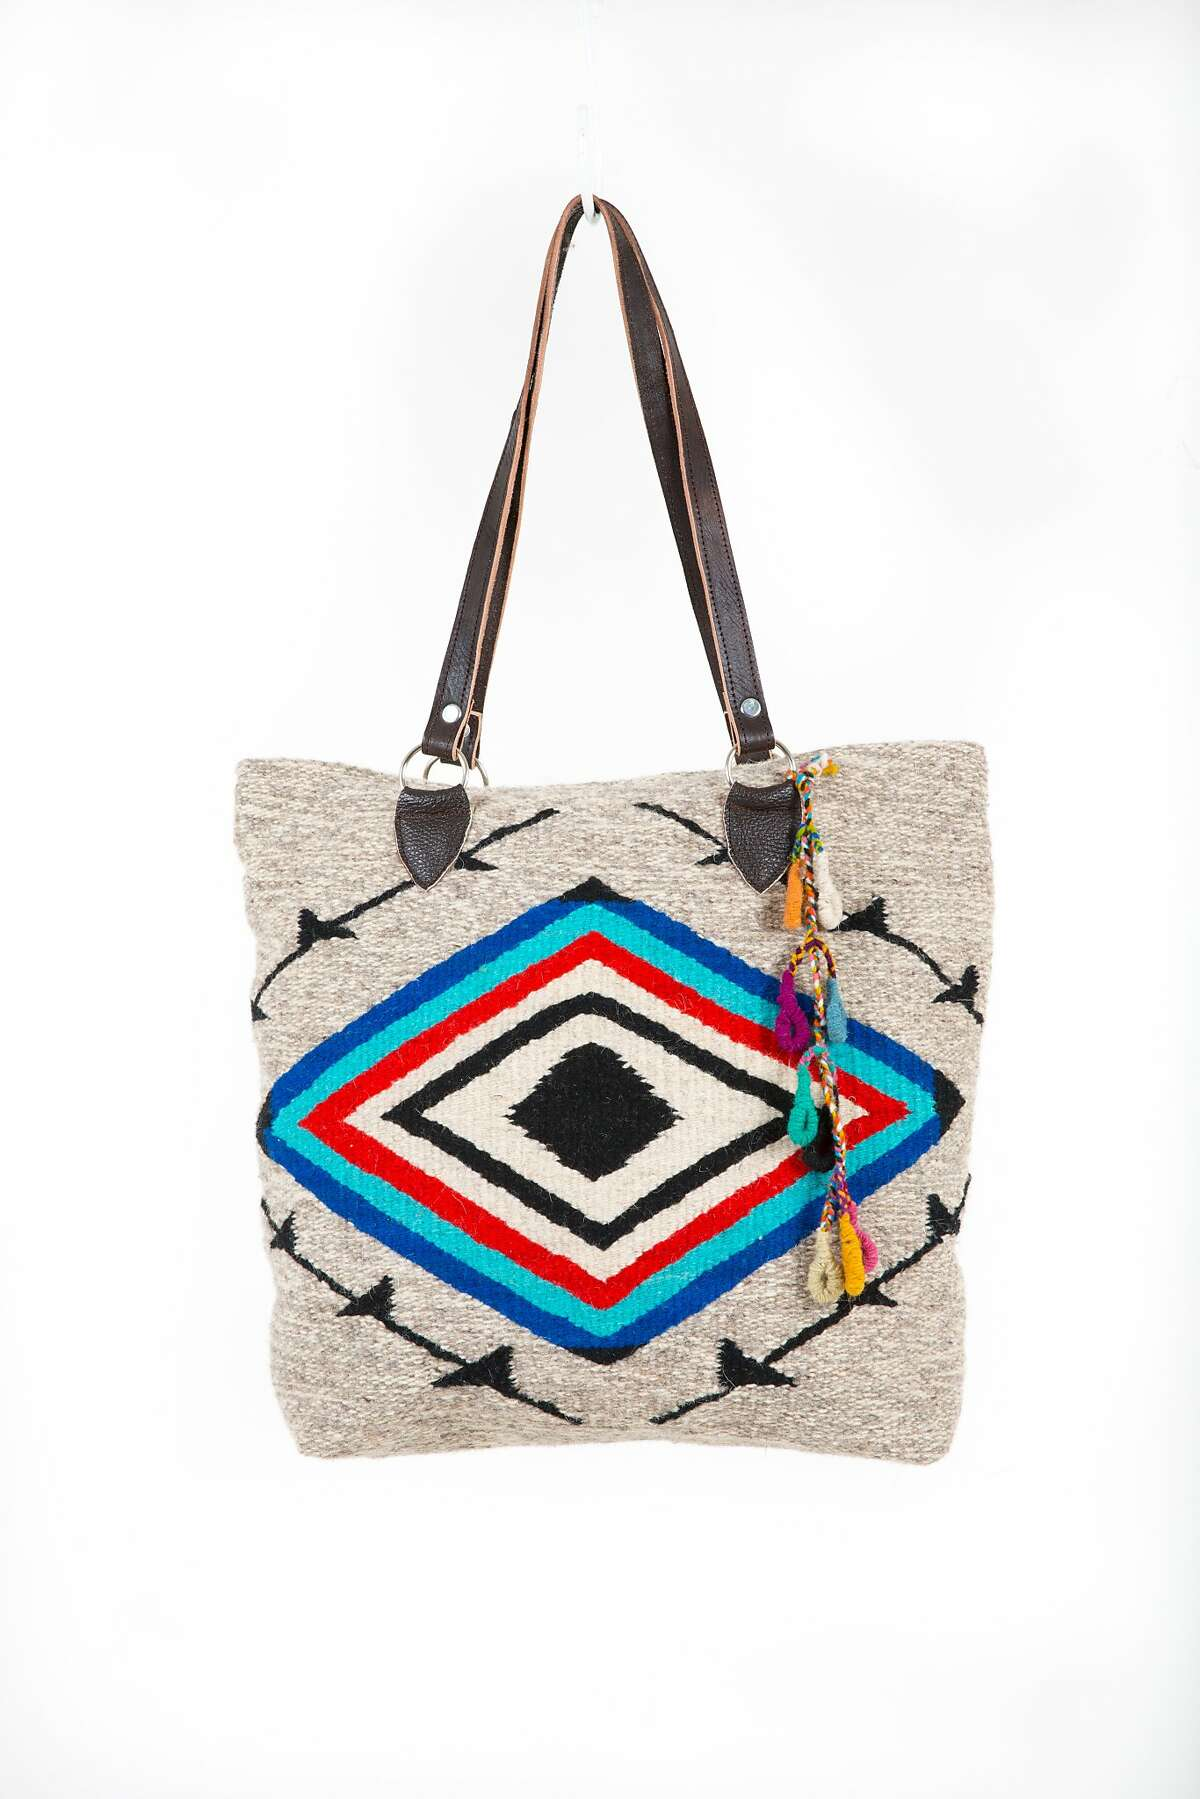 Rugs by Roseli Ilano, an Oakland-based textile designer. Oversized weekender, $300. Double sided seeing eye tote, $250. Available at www.ilanodesign.com.